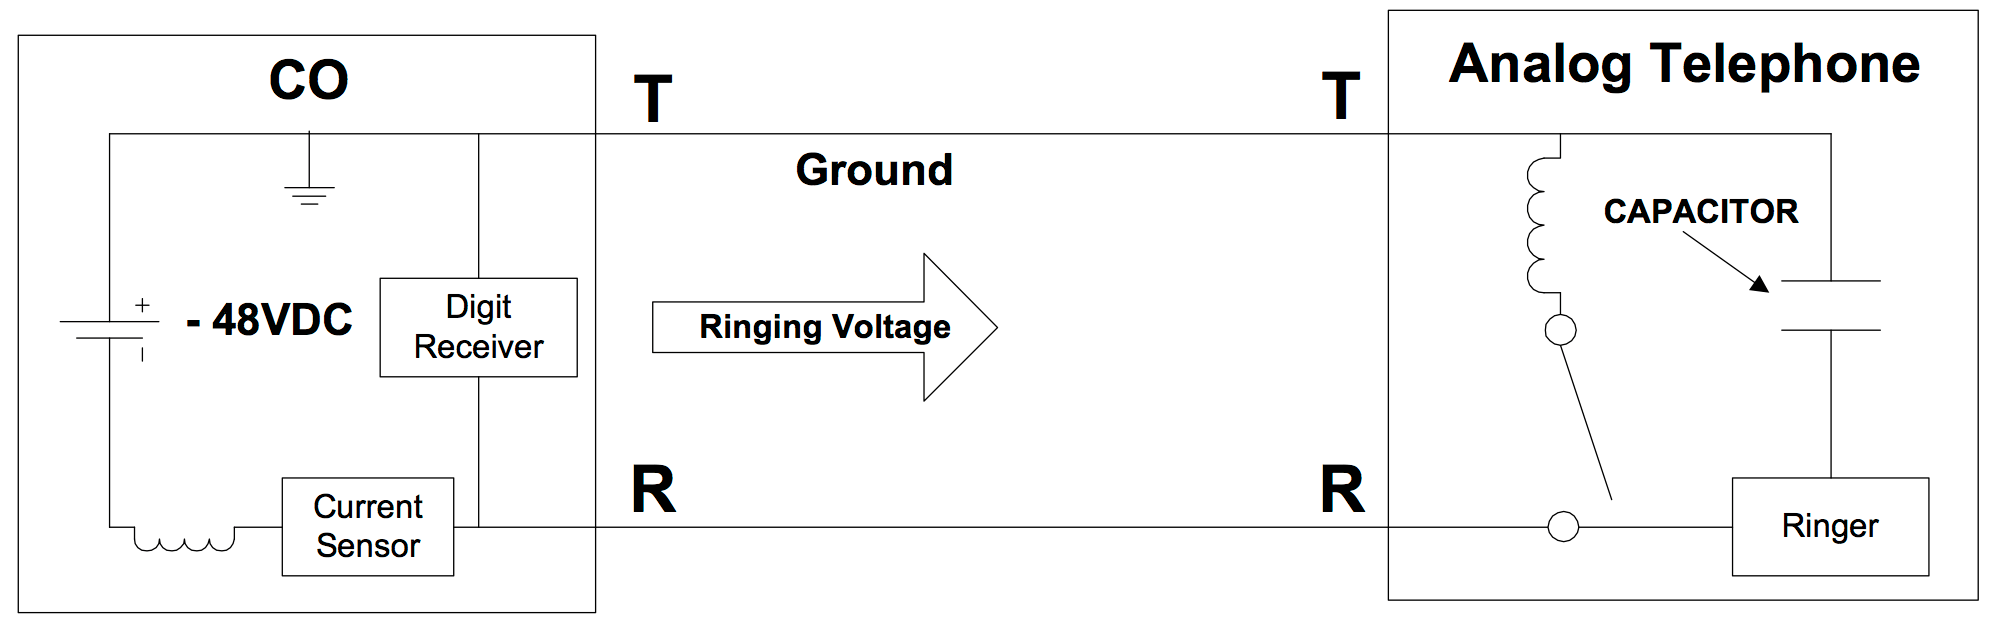 hight resolution of all about analog lines phone talk telephone line wiring ring